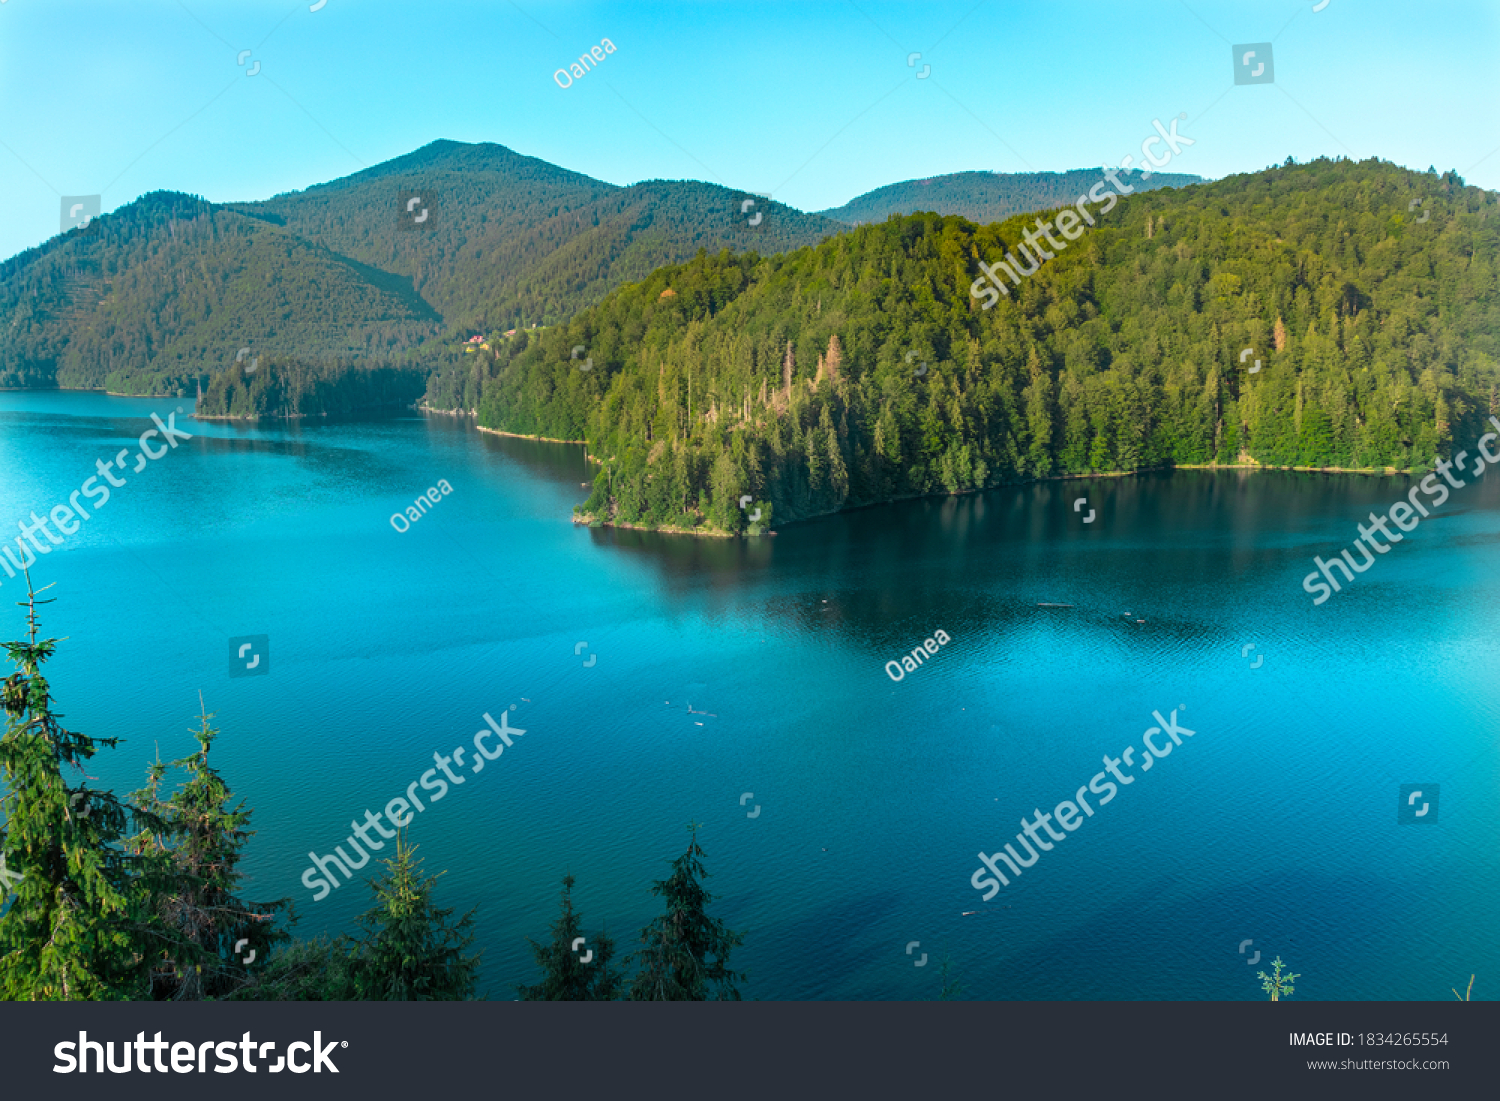 Mountain lake with clear water view from above